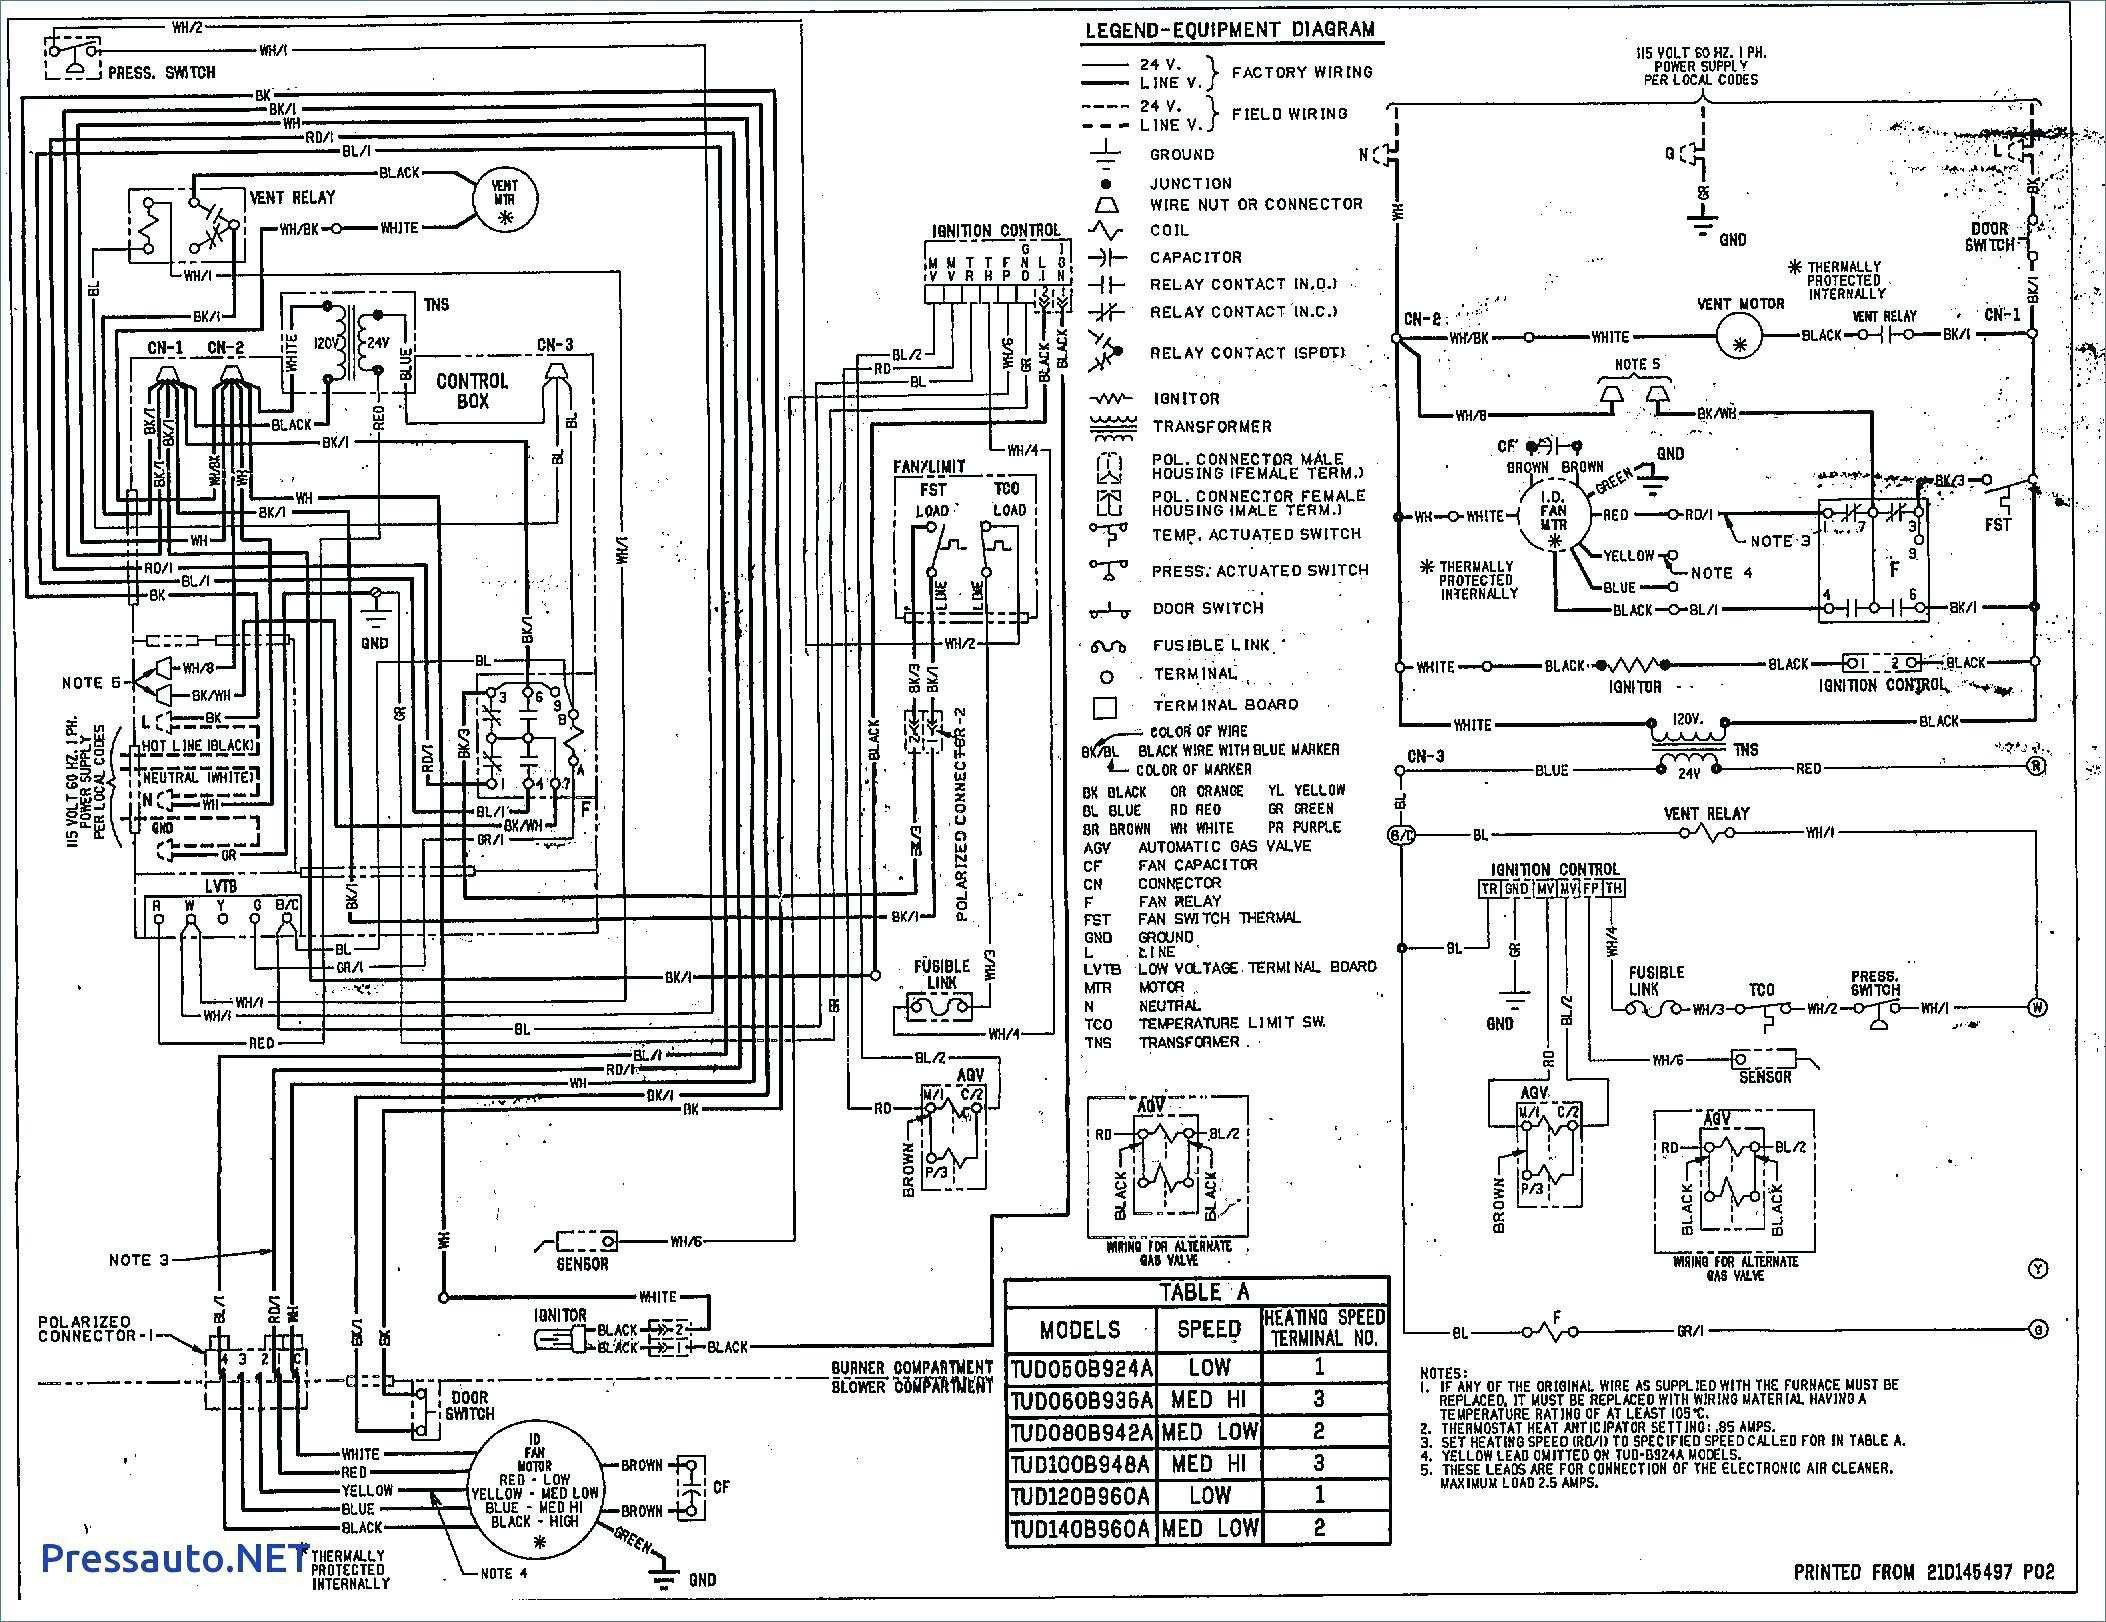 Goodman Sequencer Wiring Diagram from static-resources.imageservice.cloud